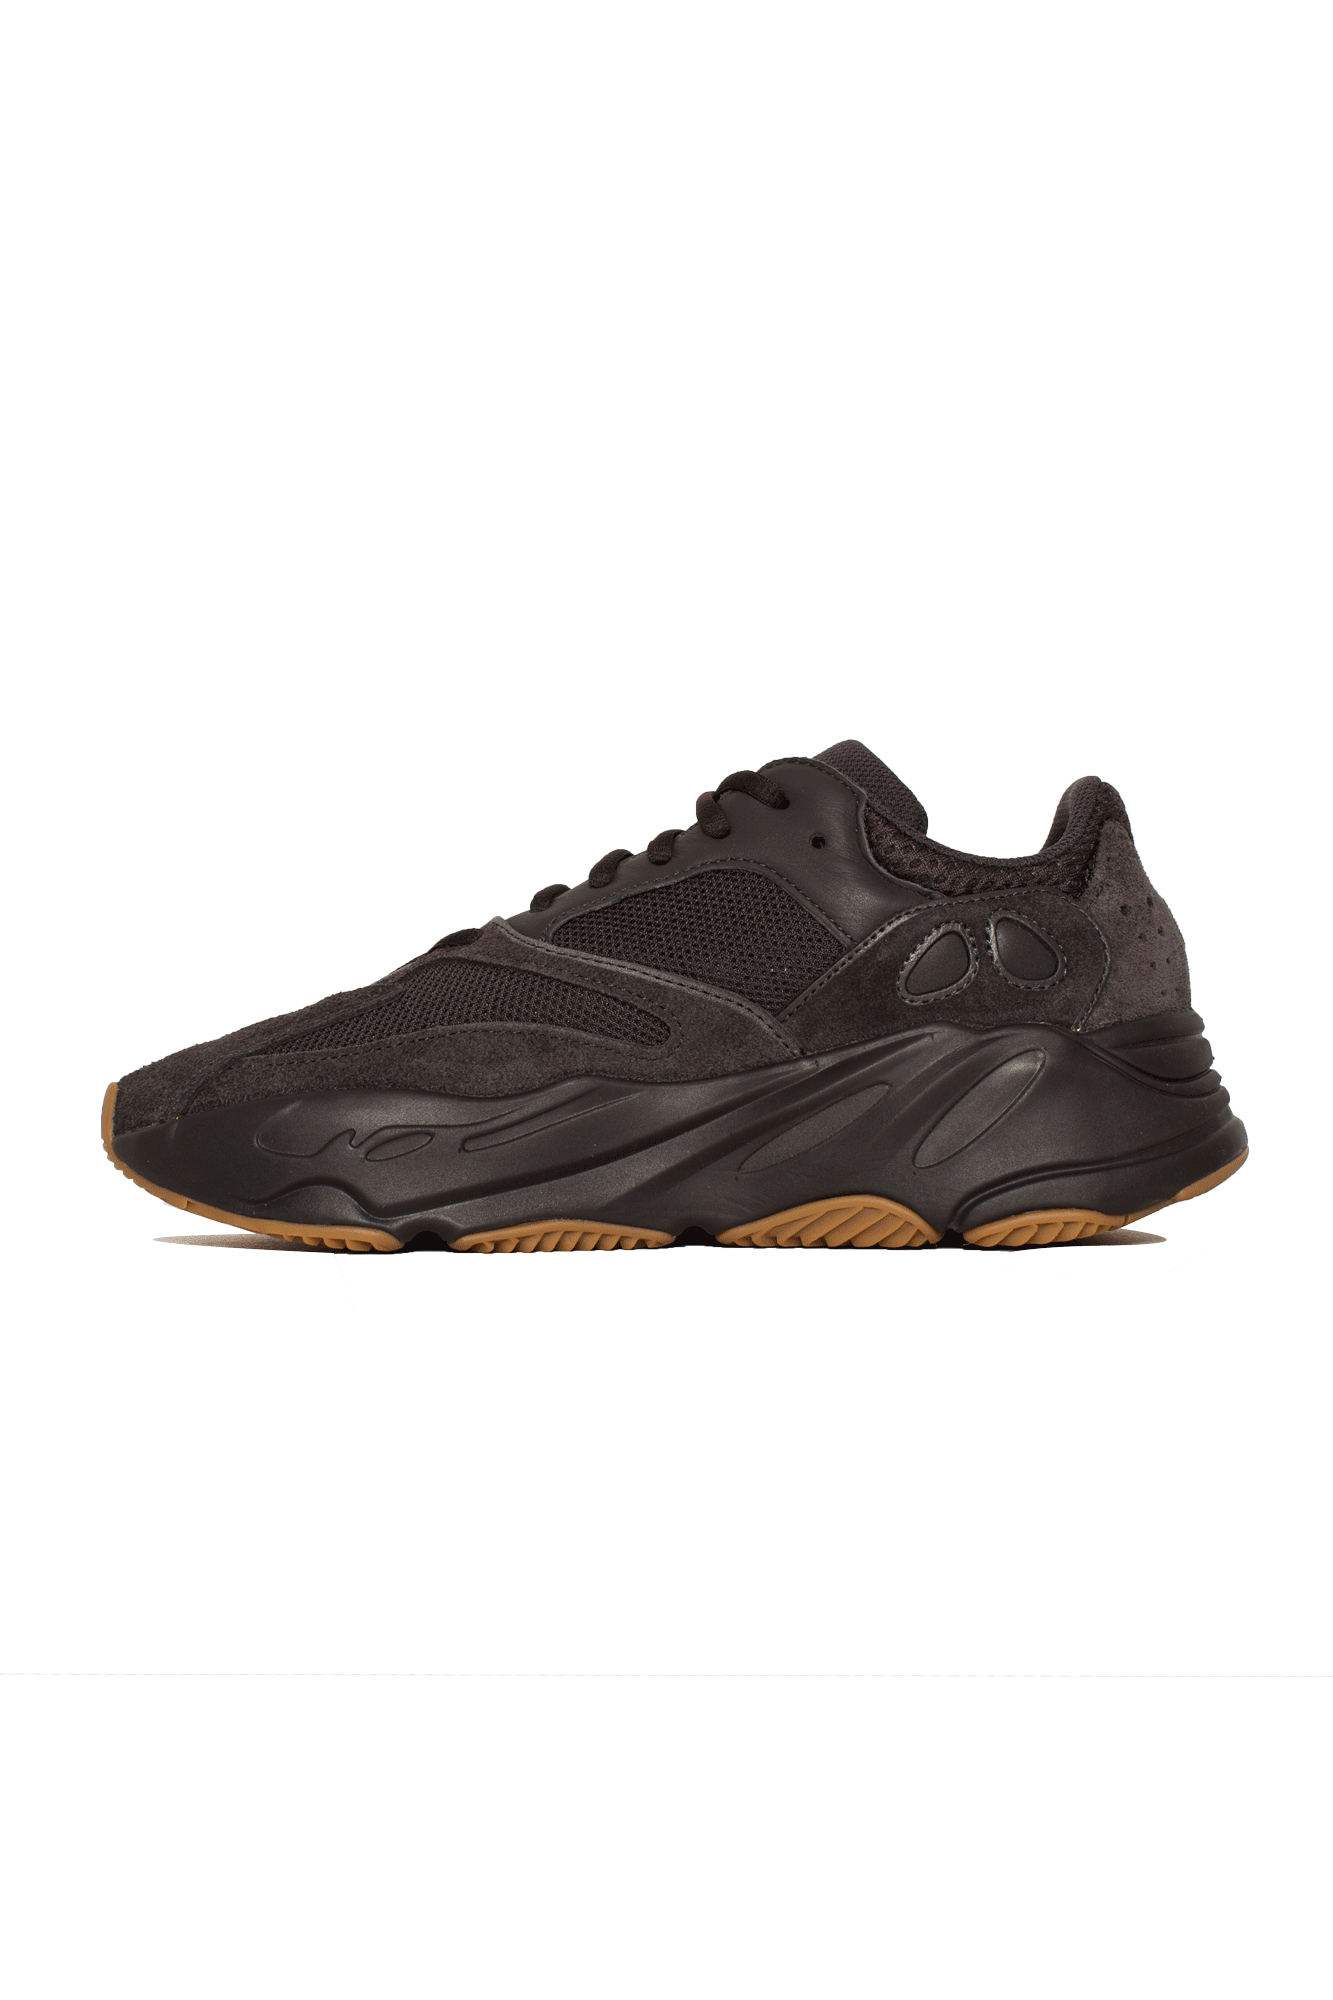 "Adidas Originals Sneakers Yeezy Boost 700 ""Utility Black"" Nero FV5304#000#C0010#7 - One Block Down"